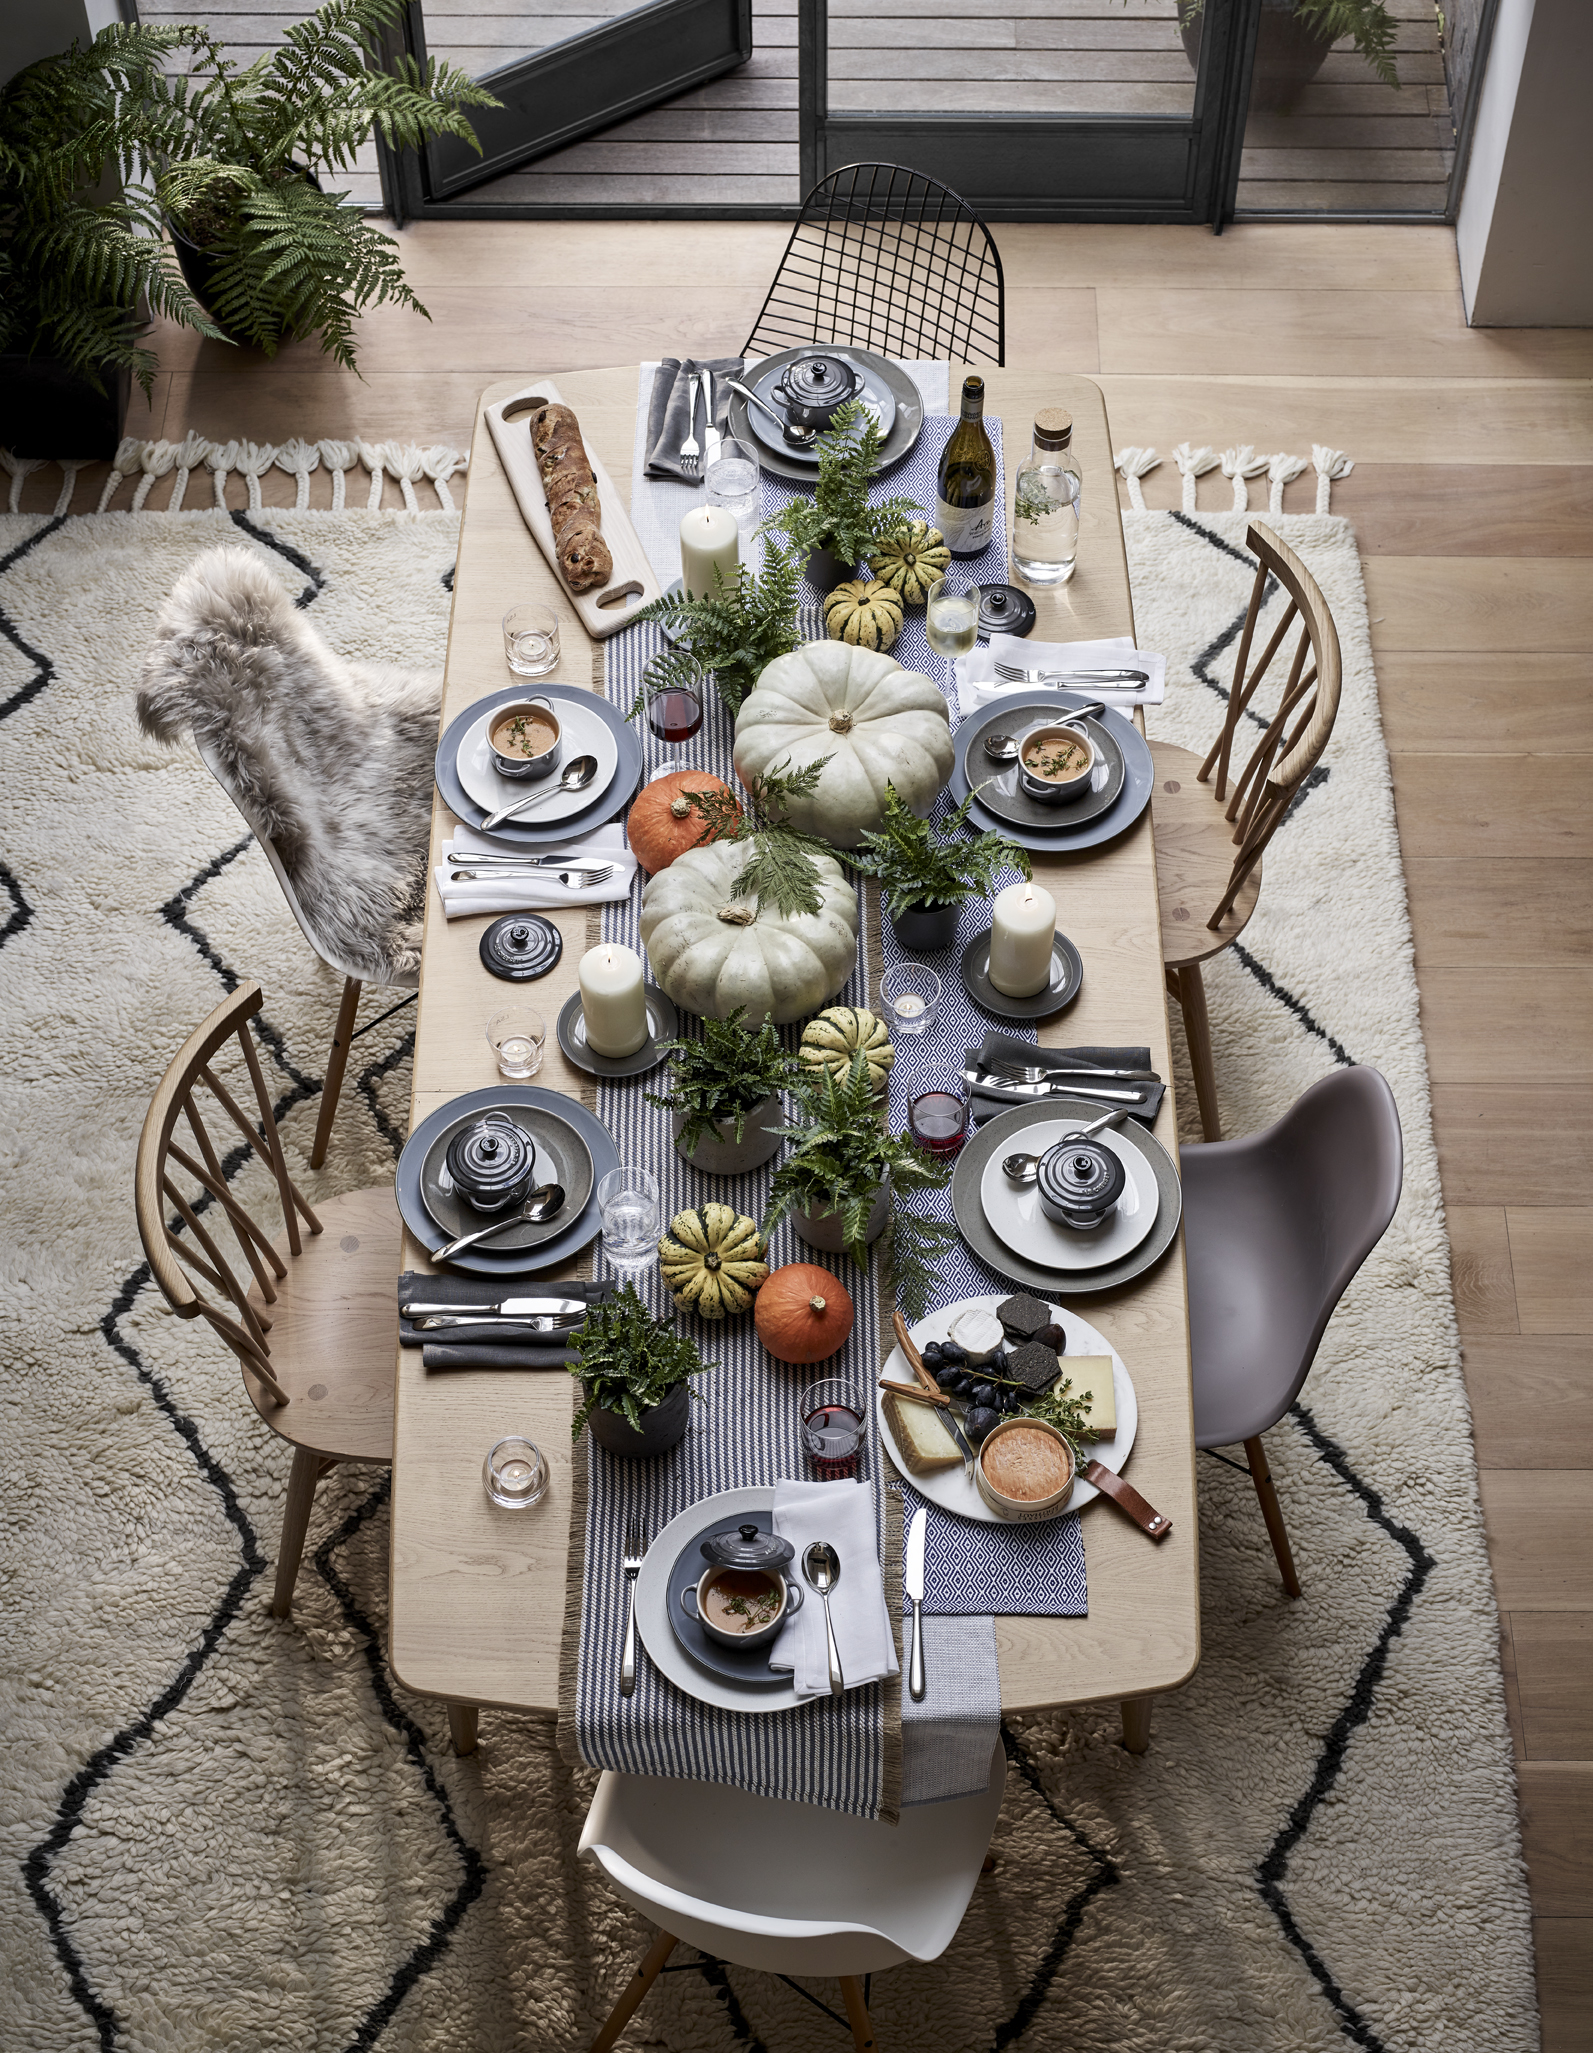 JL_AW18_AUTUMN_TABLE_OVEN_TO_TABLE.jpg